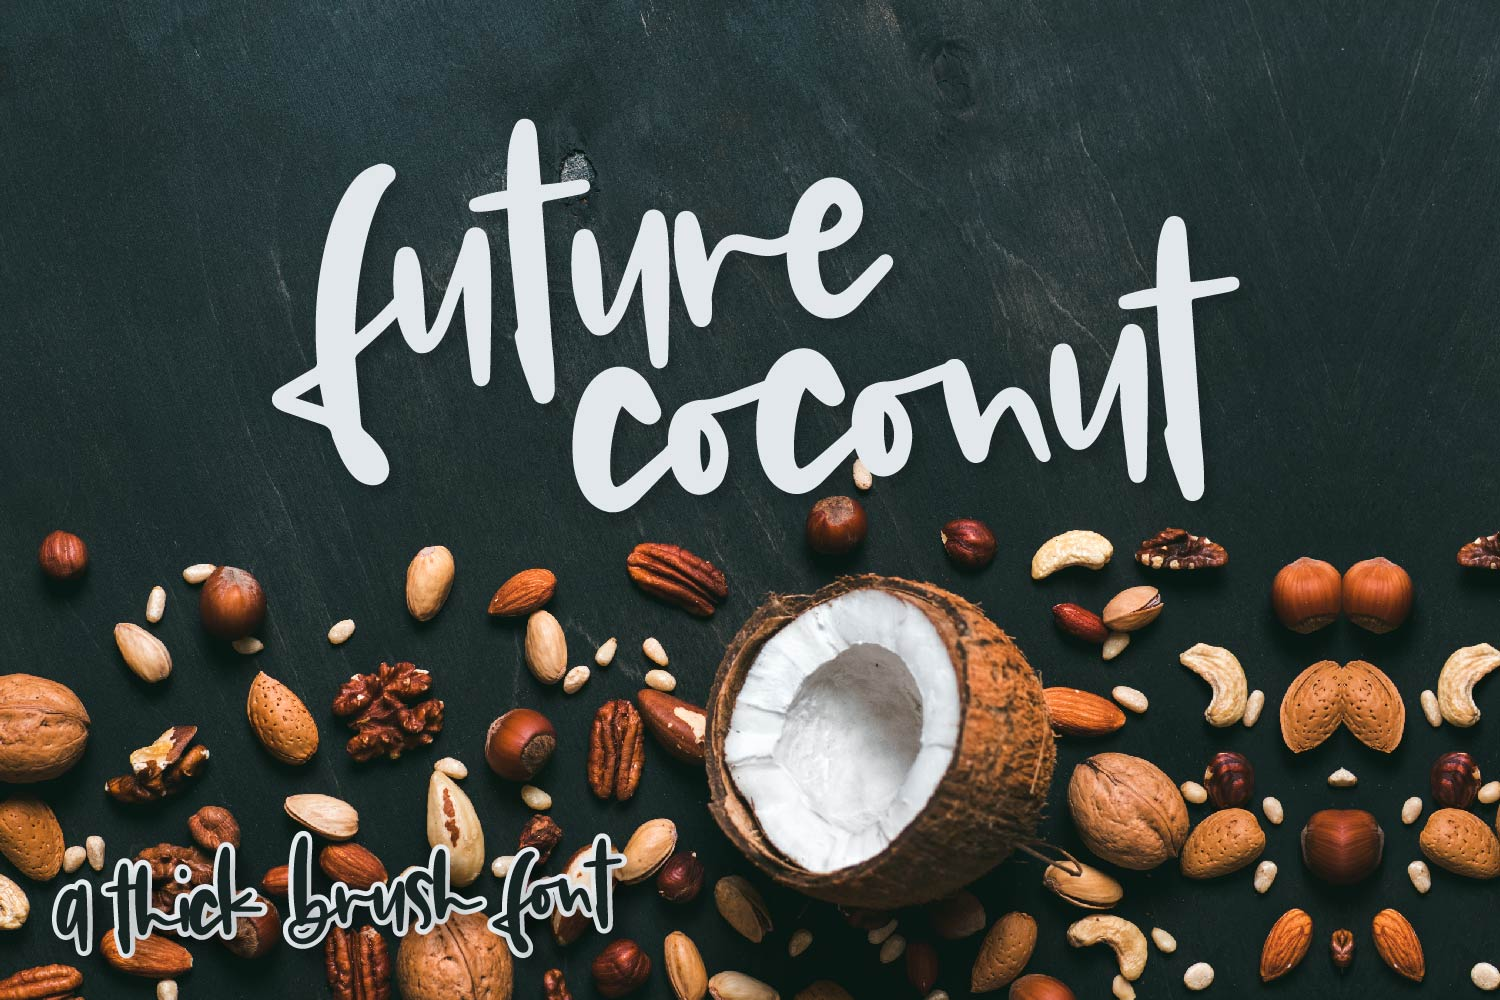 Future Coconut - A Thick Brush Font example image 1